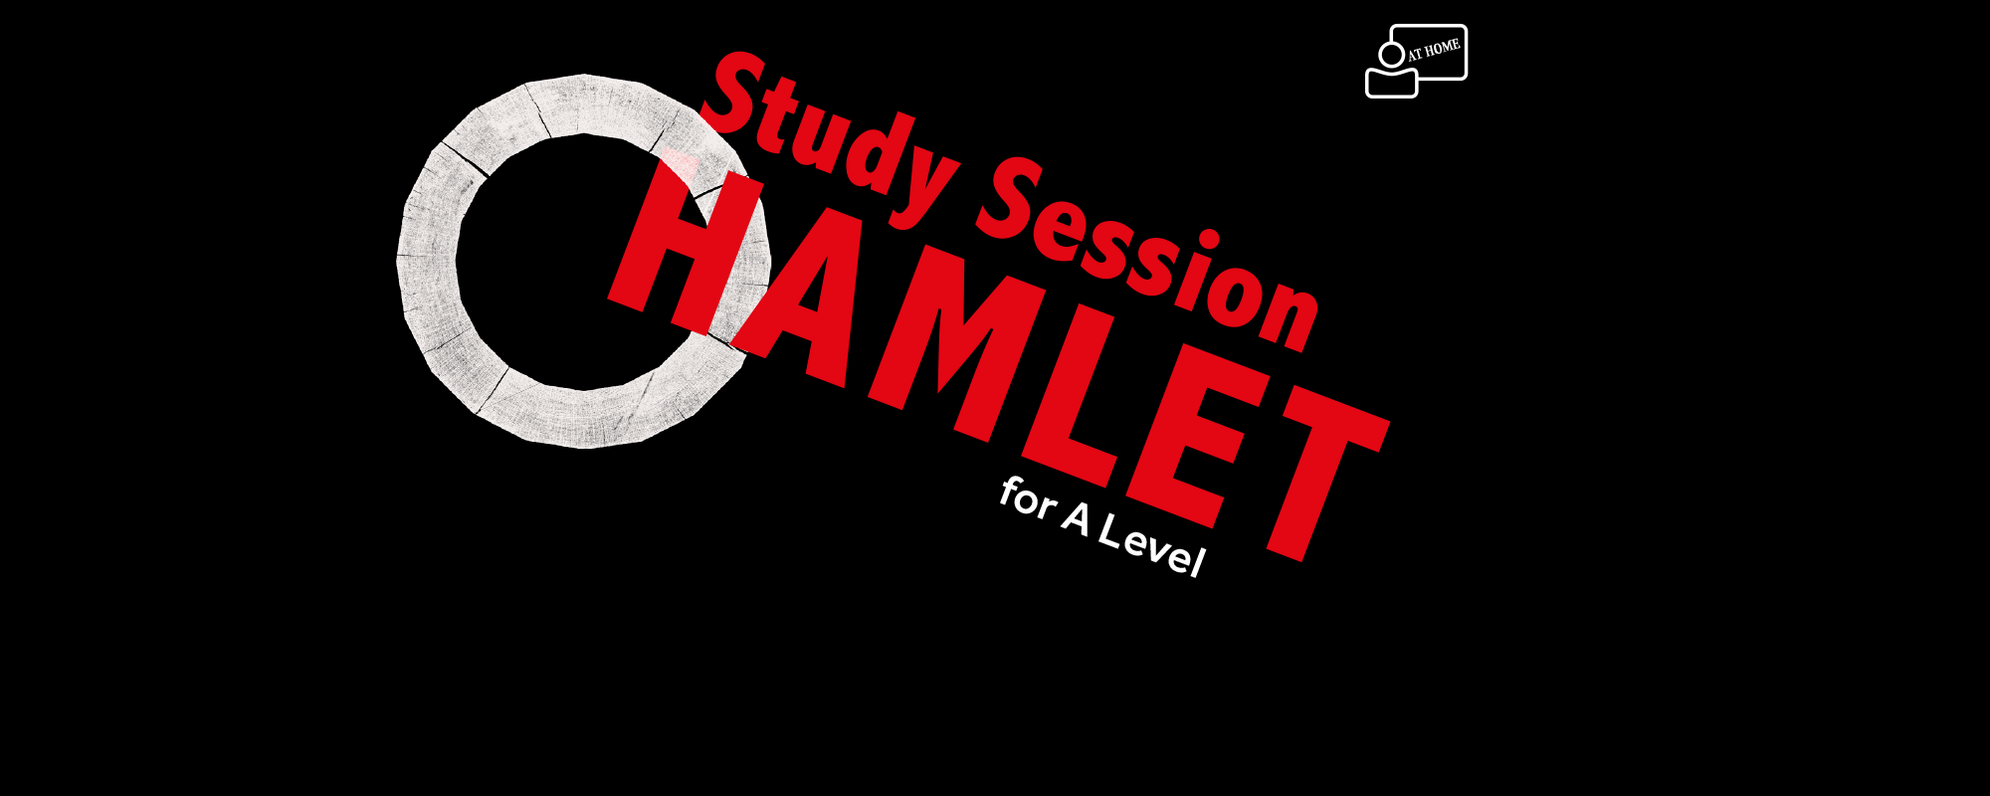 Study Session Hamlet for A-Level at Home